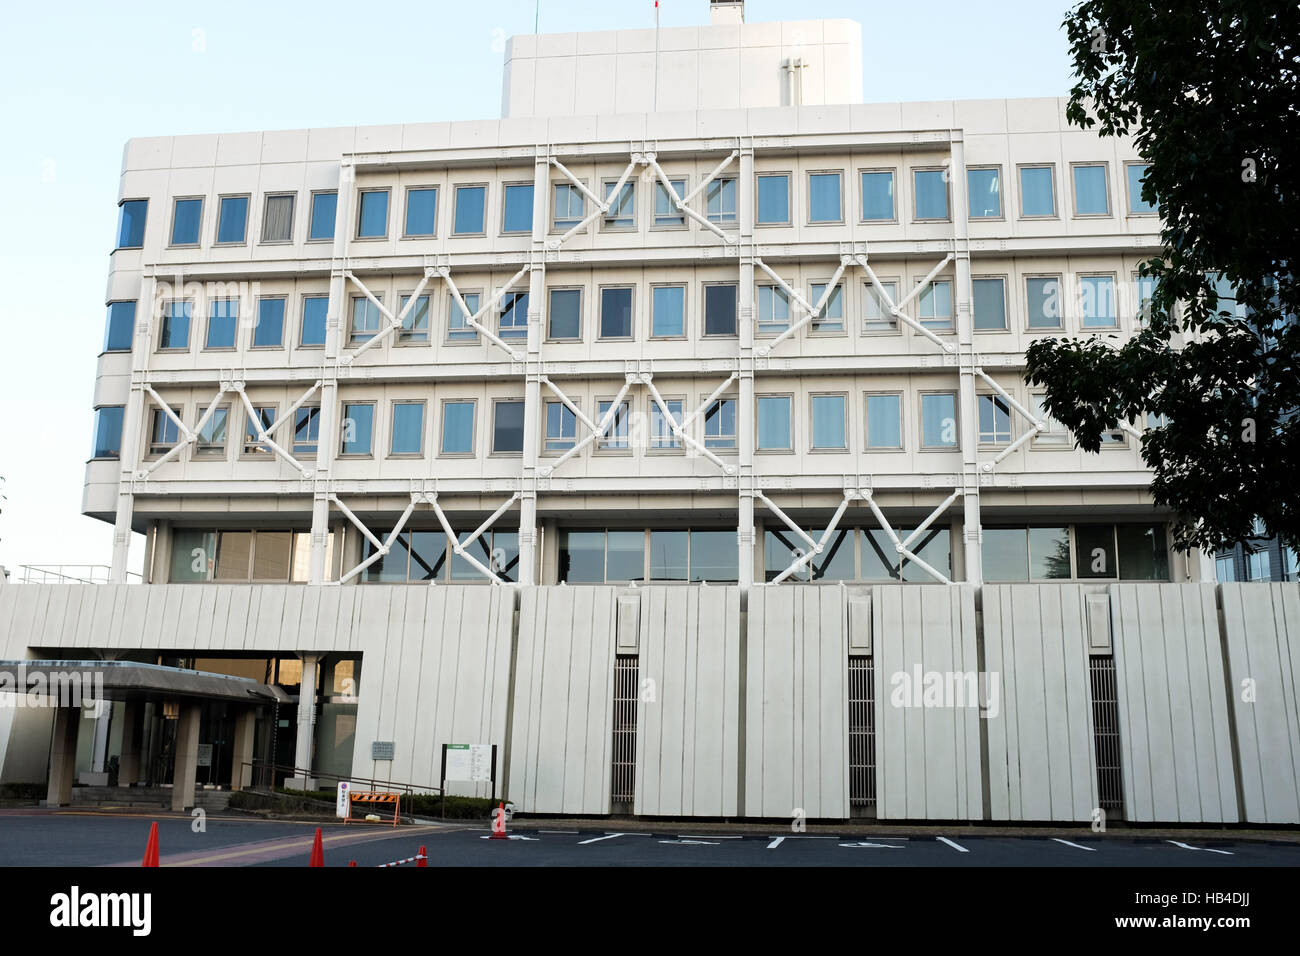 A building in Japan with external reinforcements to help protect it from the effects of earthquakes. - Stock Image